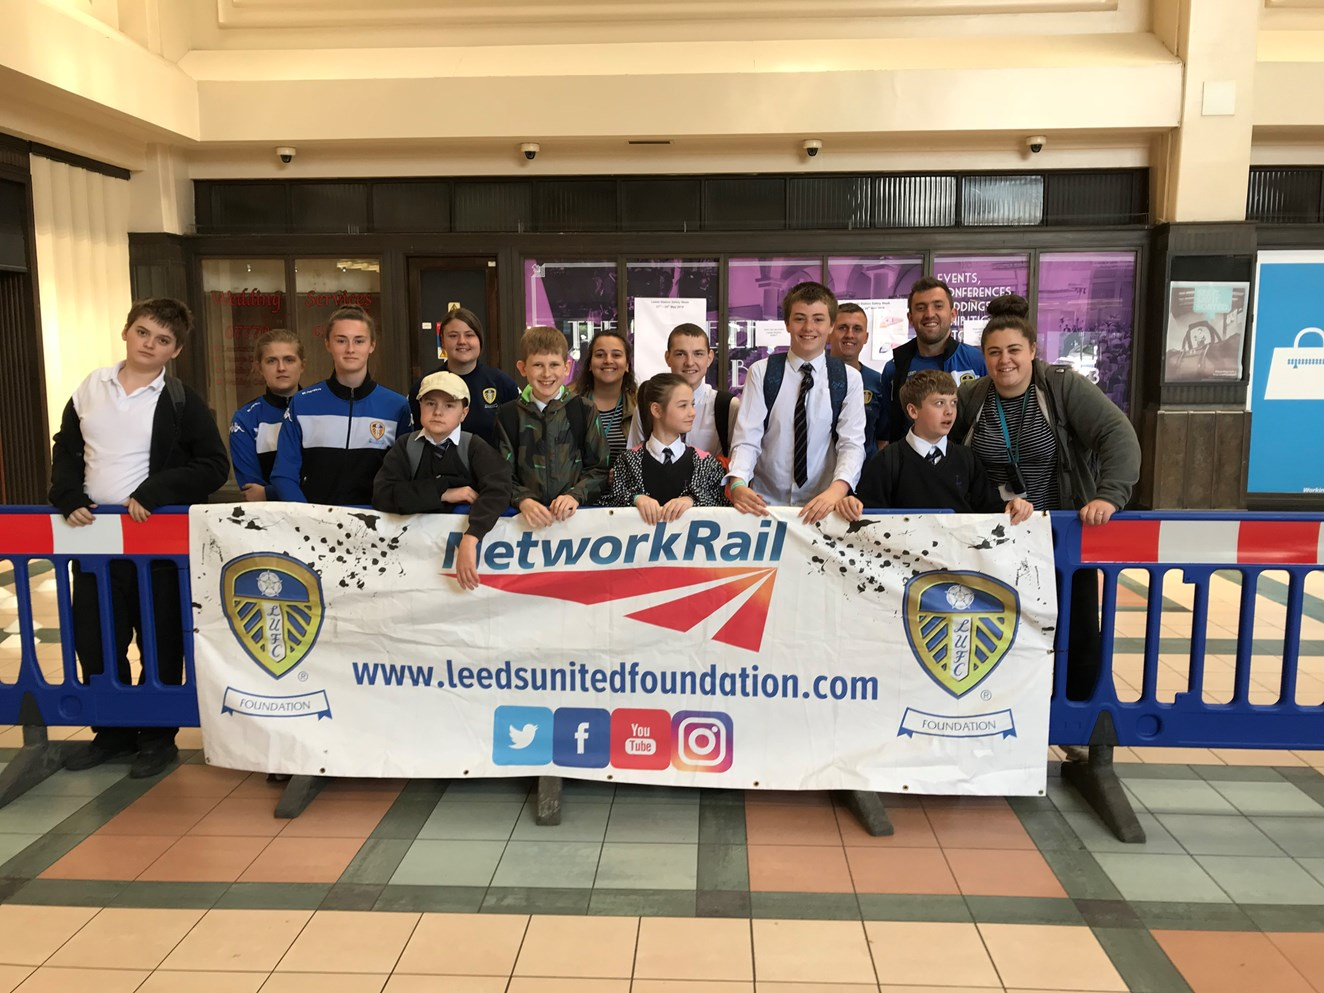 Leeds Station Safety Week 2018 launched: Leeds Station Safety week 2018 launched